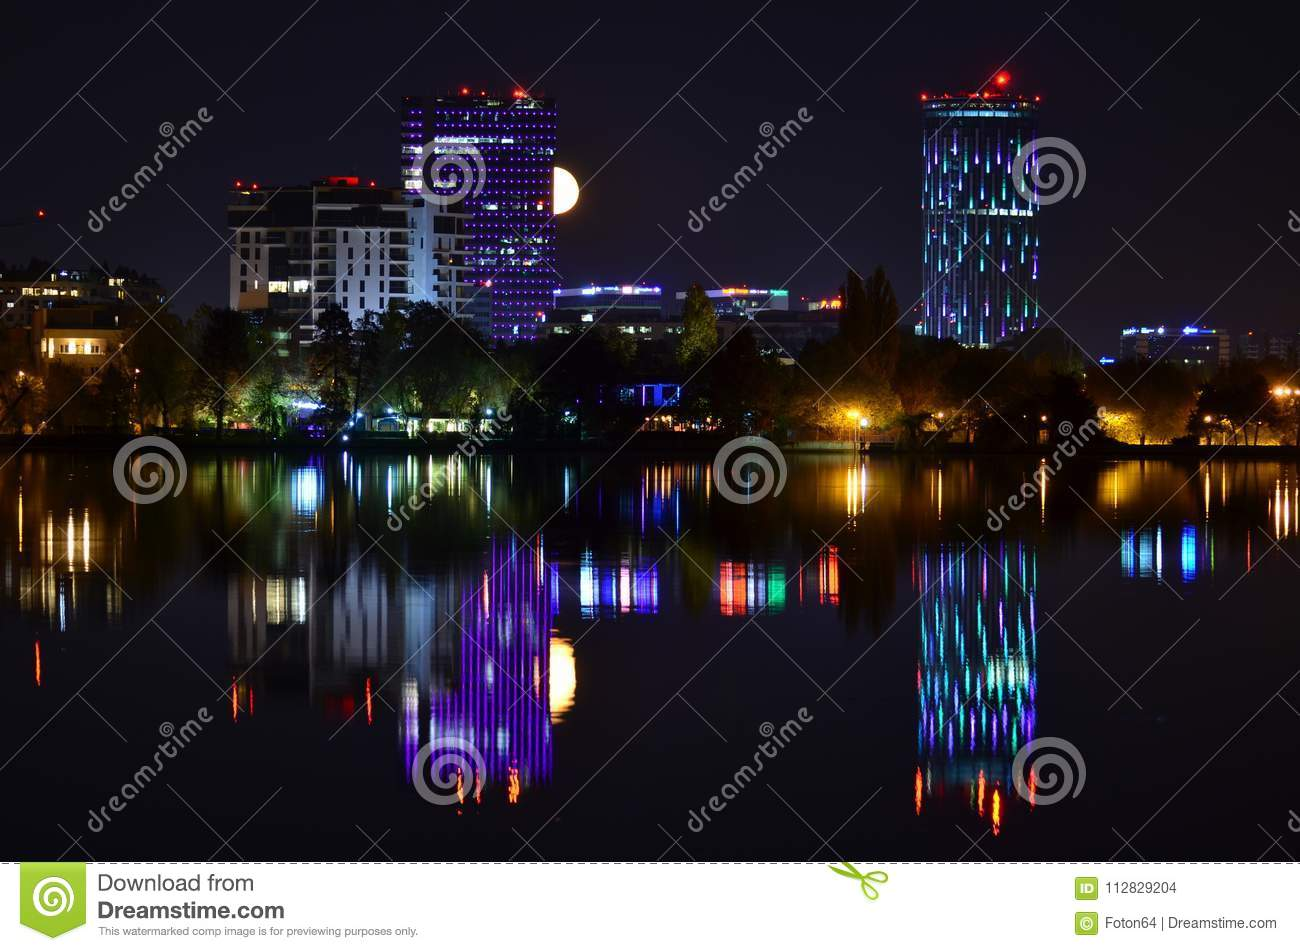 Violet lights night scene with full moon and water reflection